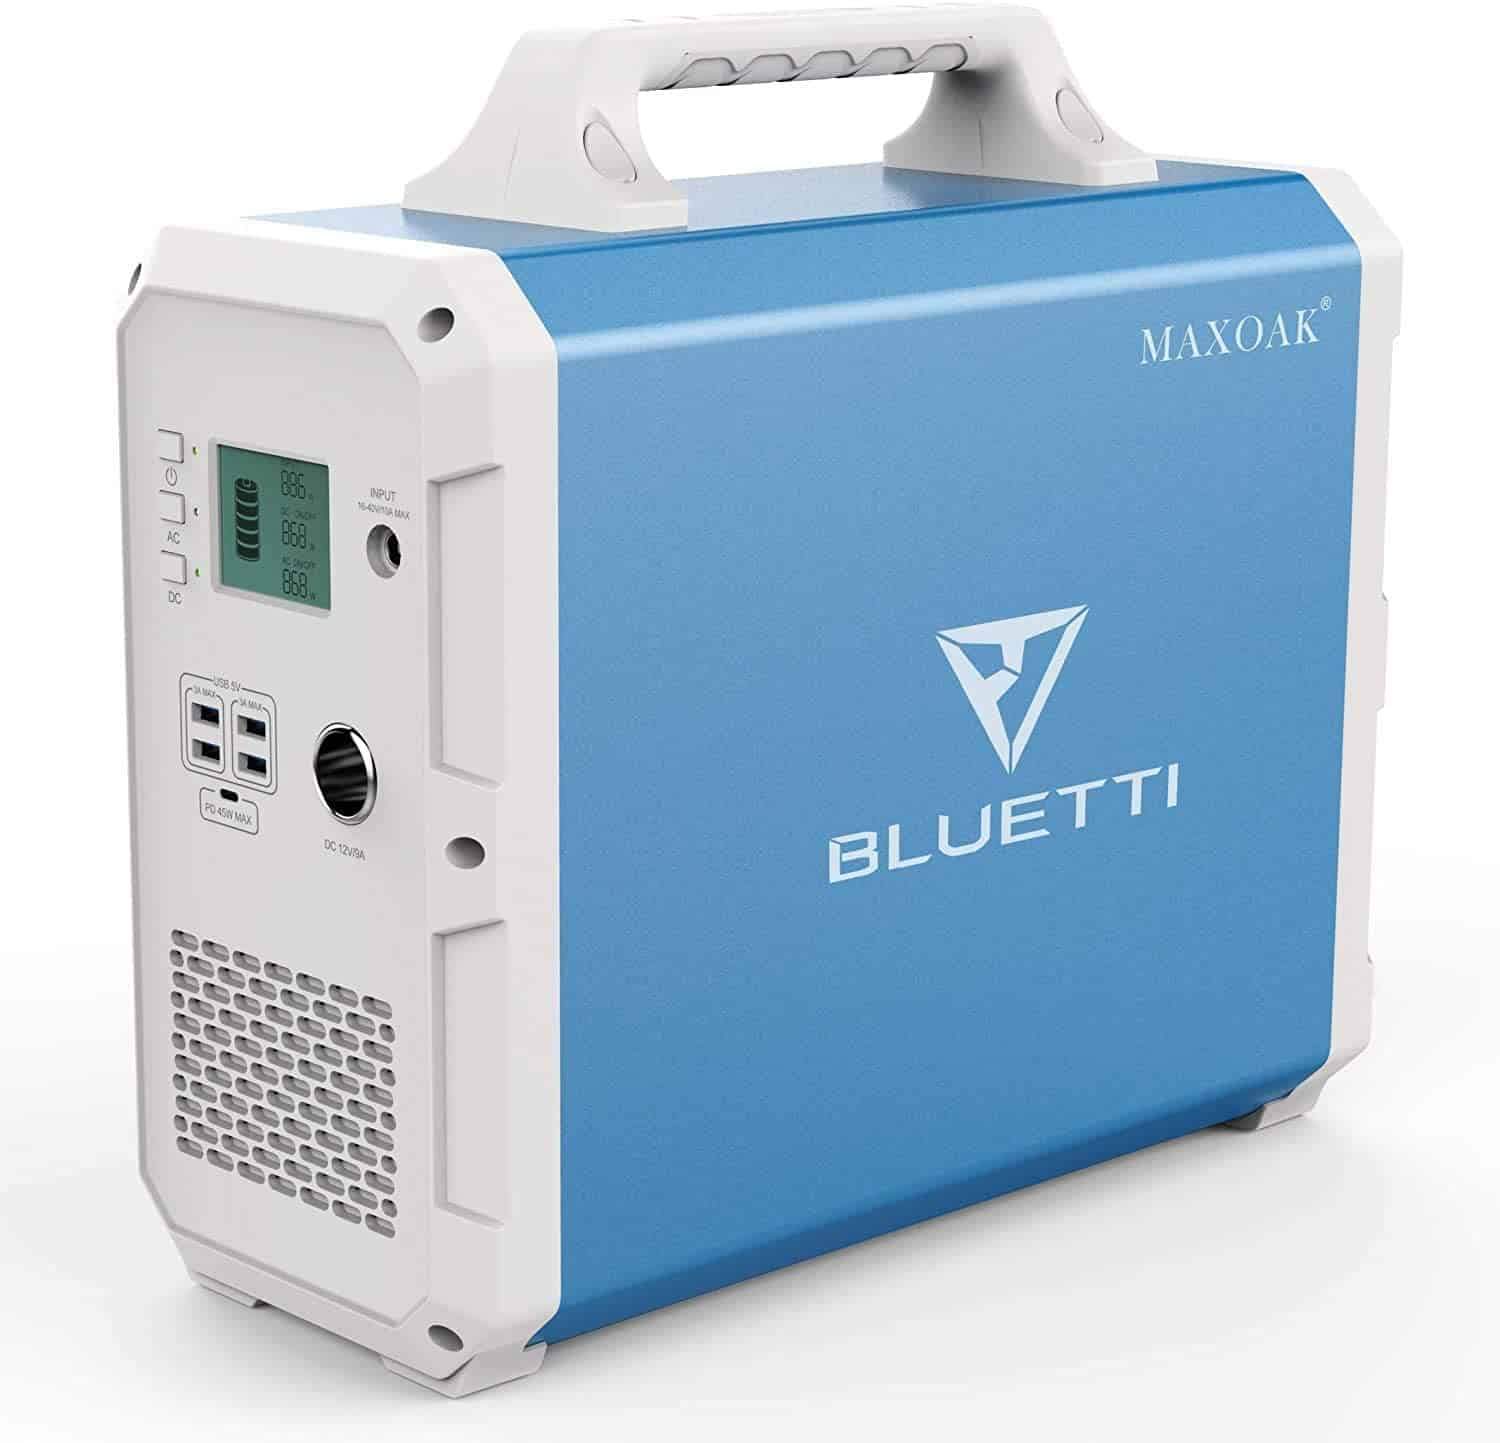 BLUETTI MAXOAK Portable Power Station